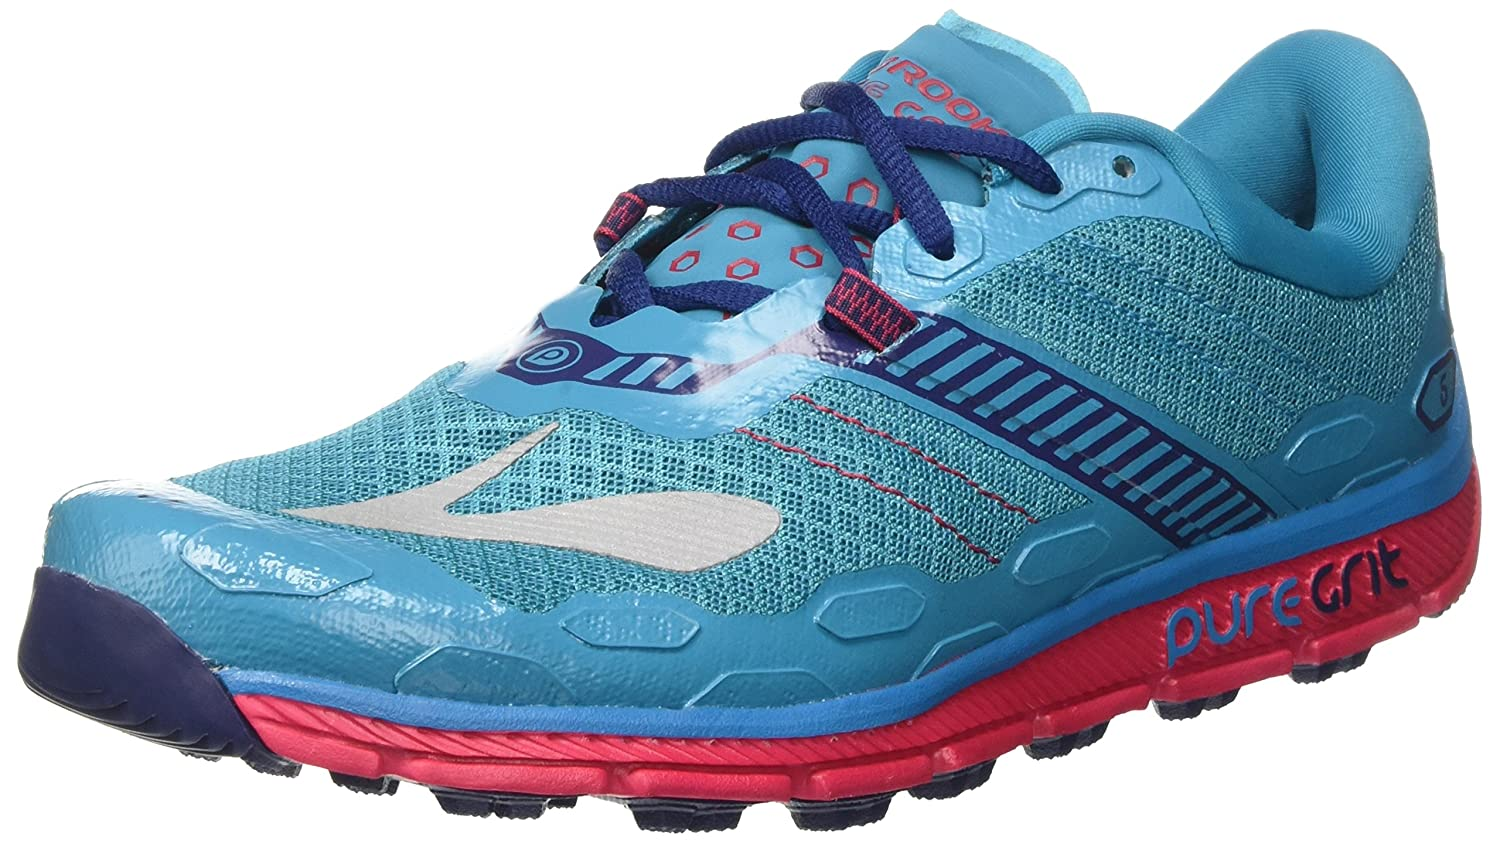 Brooks Women's PureGrit 5 B01GF85122 7 B(M) US|Peacock Blue/Virtual Pink/Patriot Blue